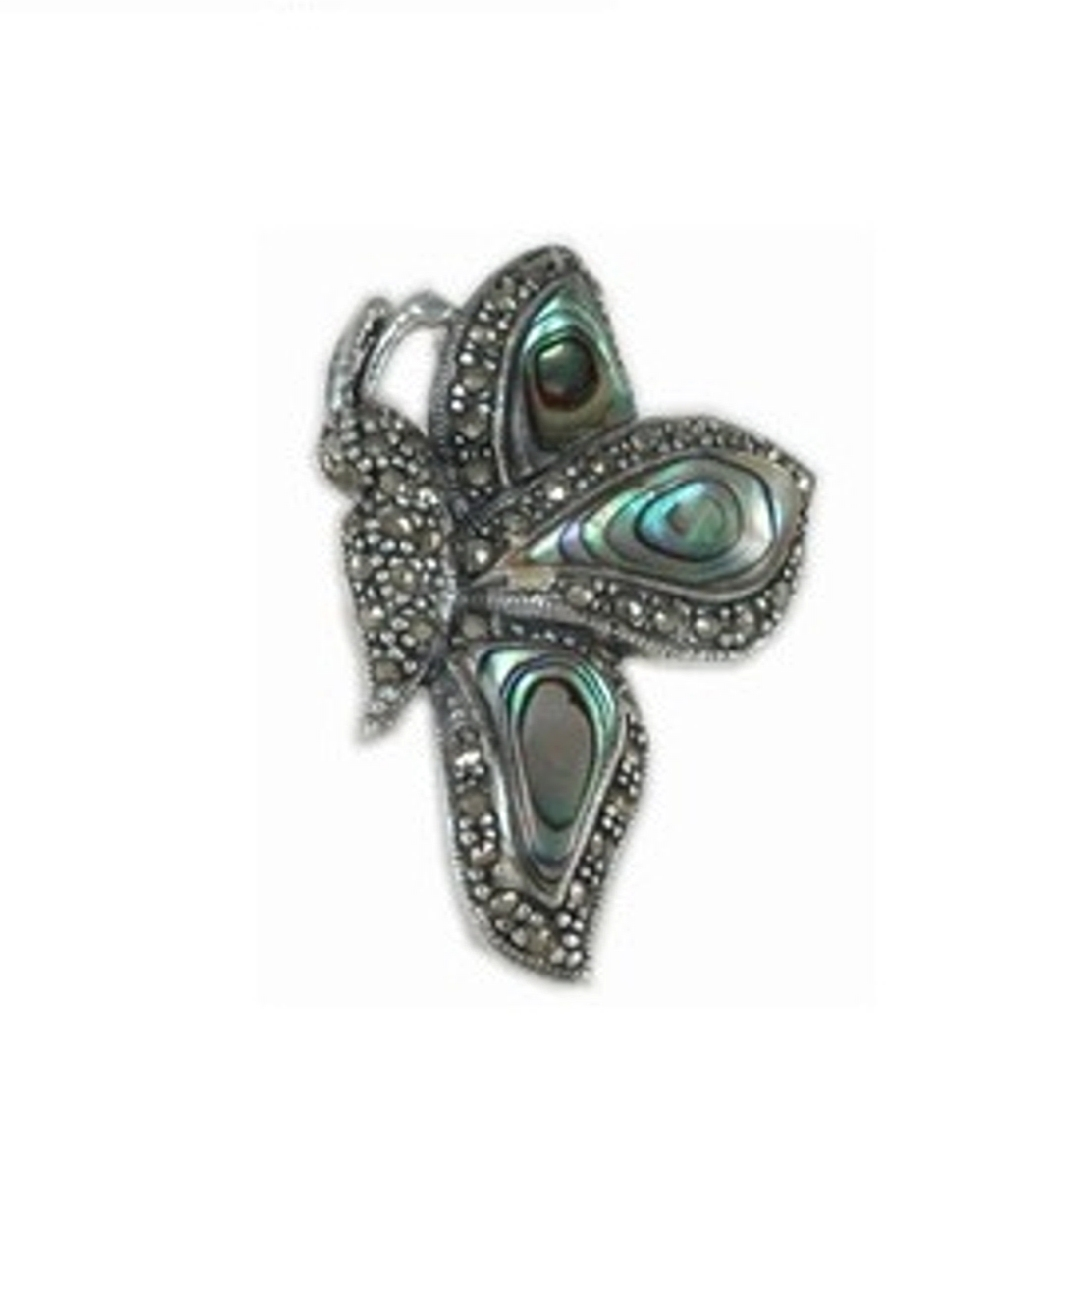 Marcasite Paua Abalone Shell Side View Butterfly Brooch Pin